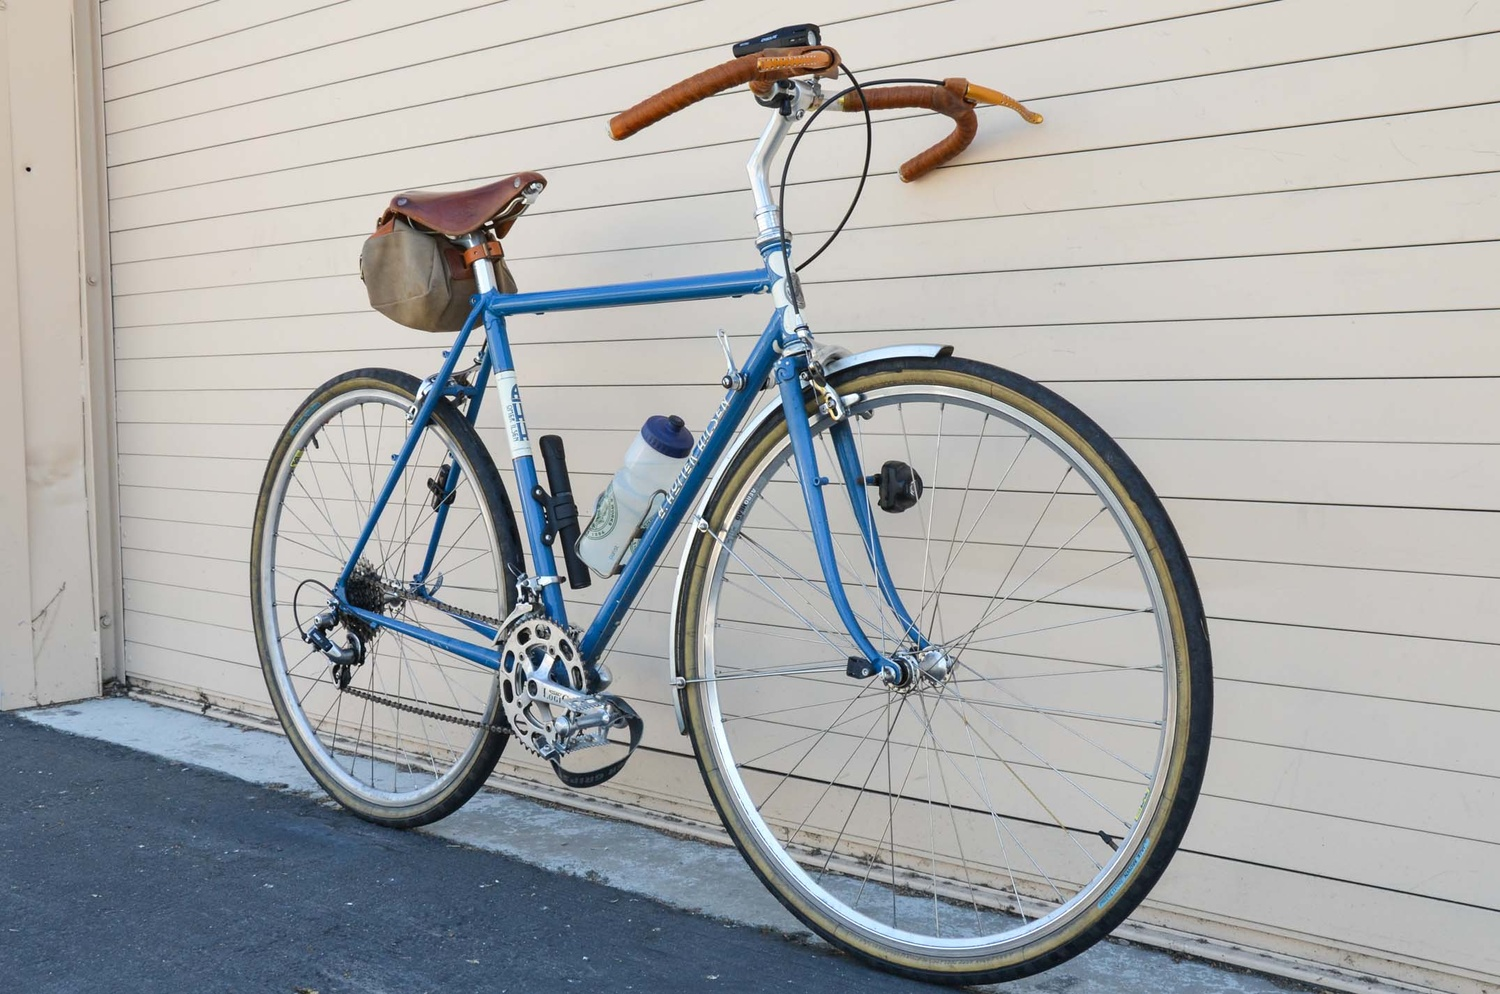 Rich's Bikes – Rivendell Bicycle Works